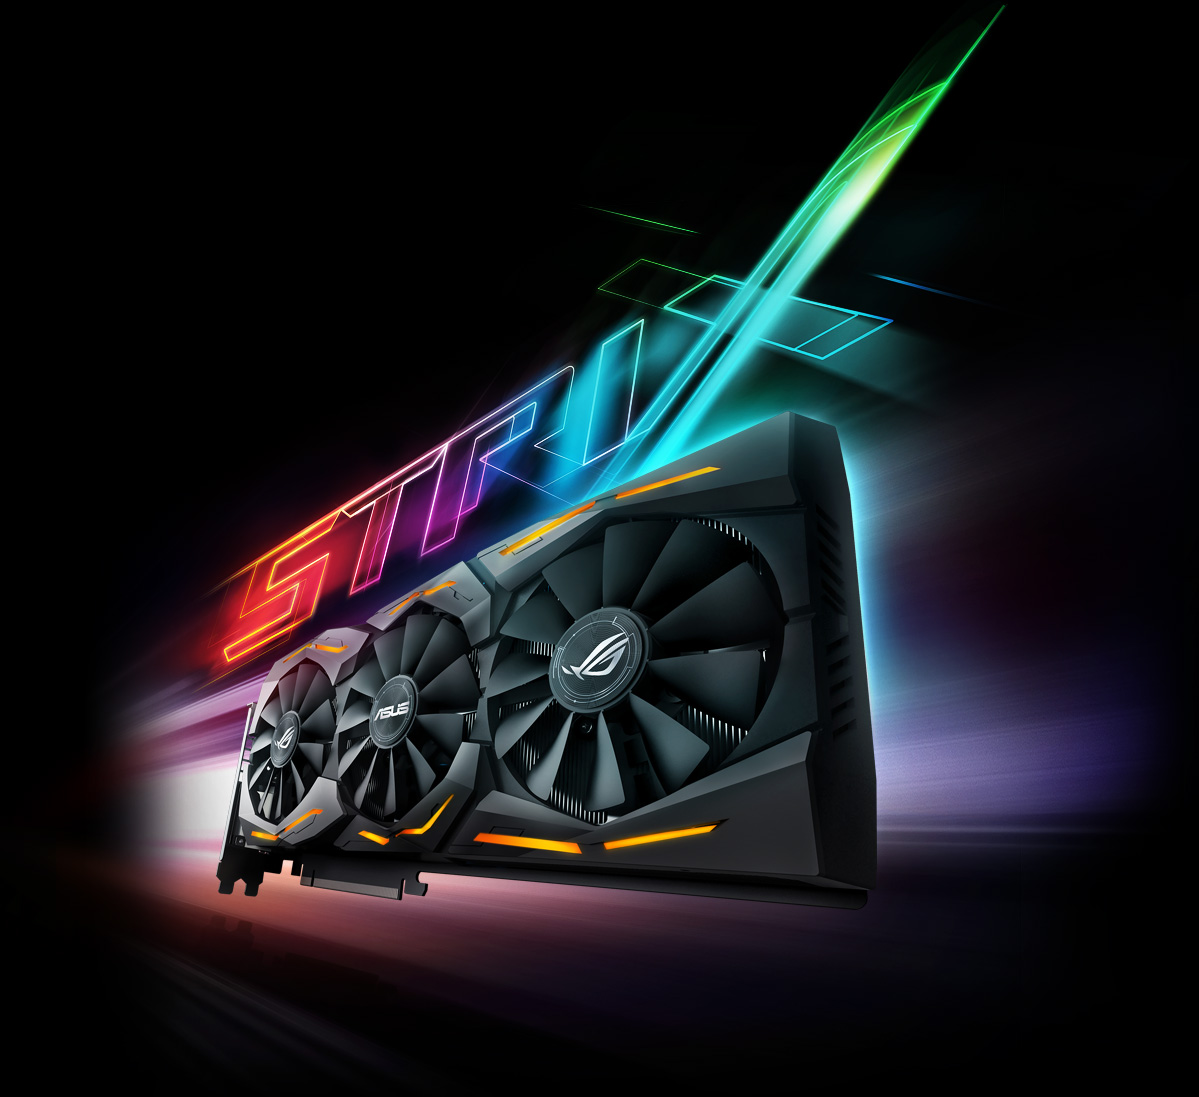 ROG-STRIX-RX590-8G-GAMING | Graphics Cards | ASUS Global